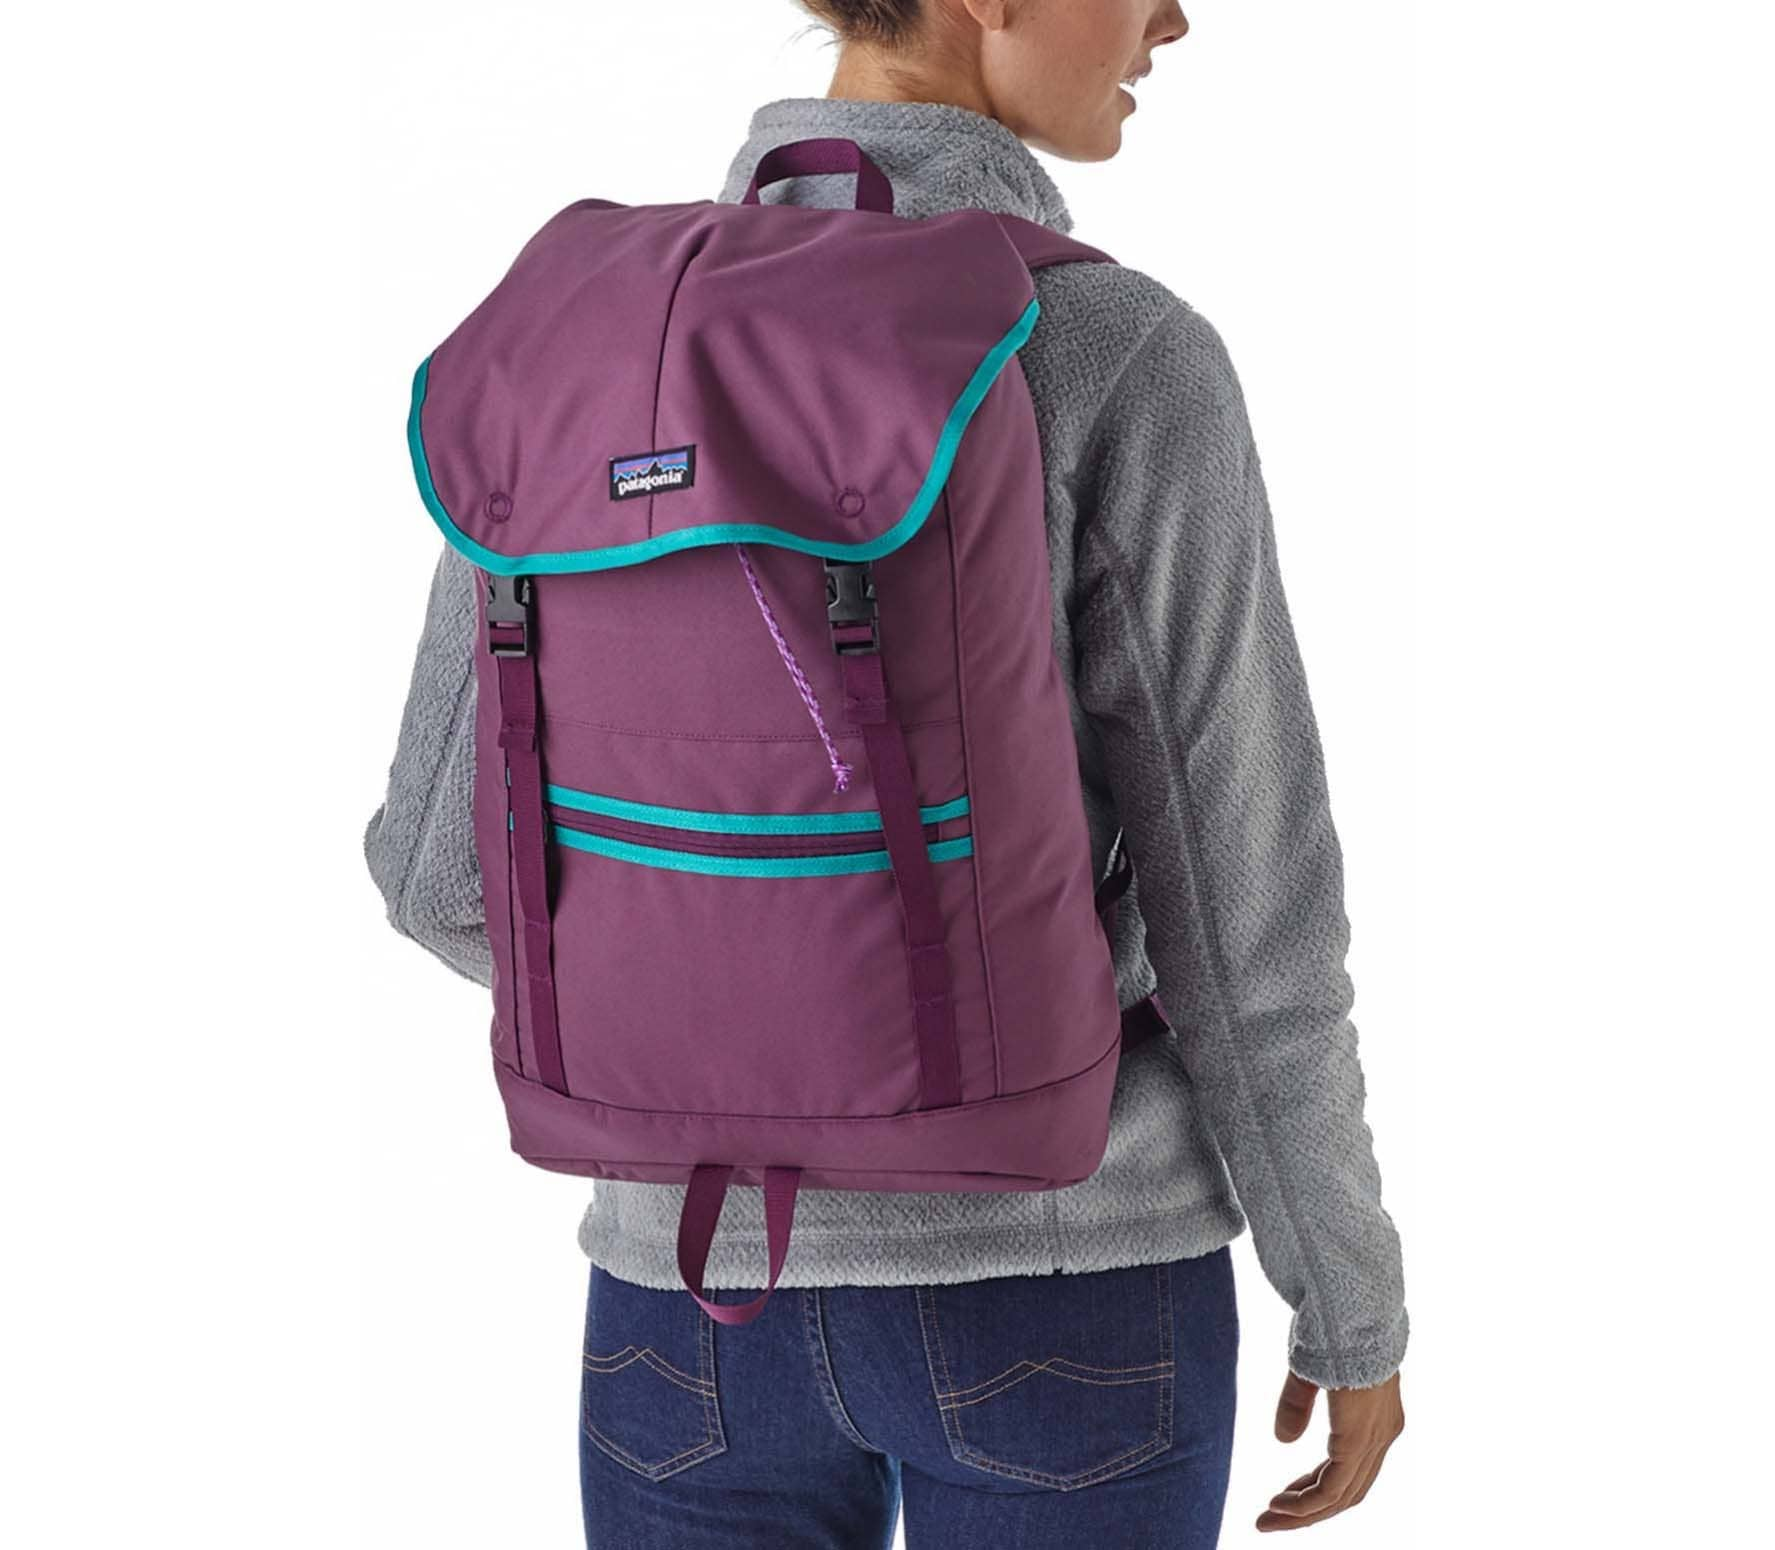 f9ddcacf9fcec Patagonia - Arbor Classic Pack 25L backpack (purple) - buy it at the ...